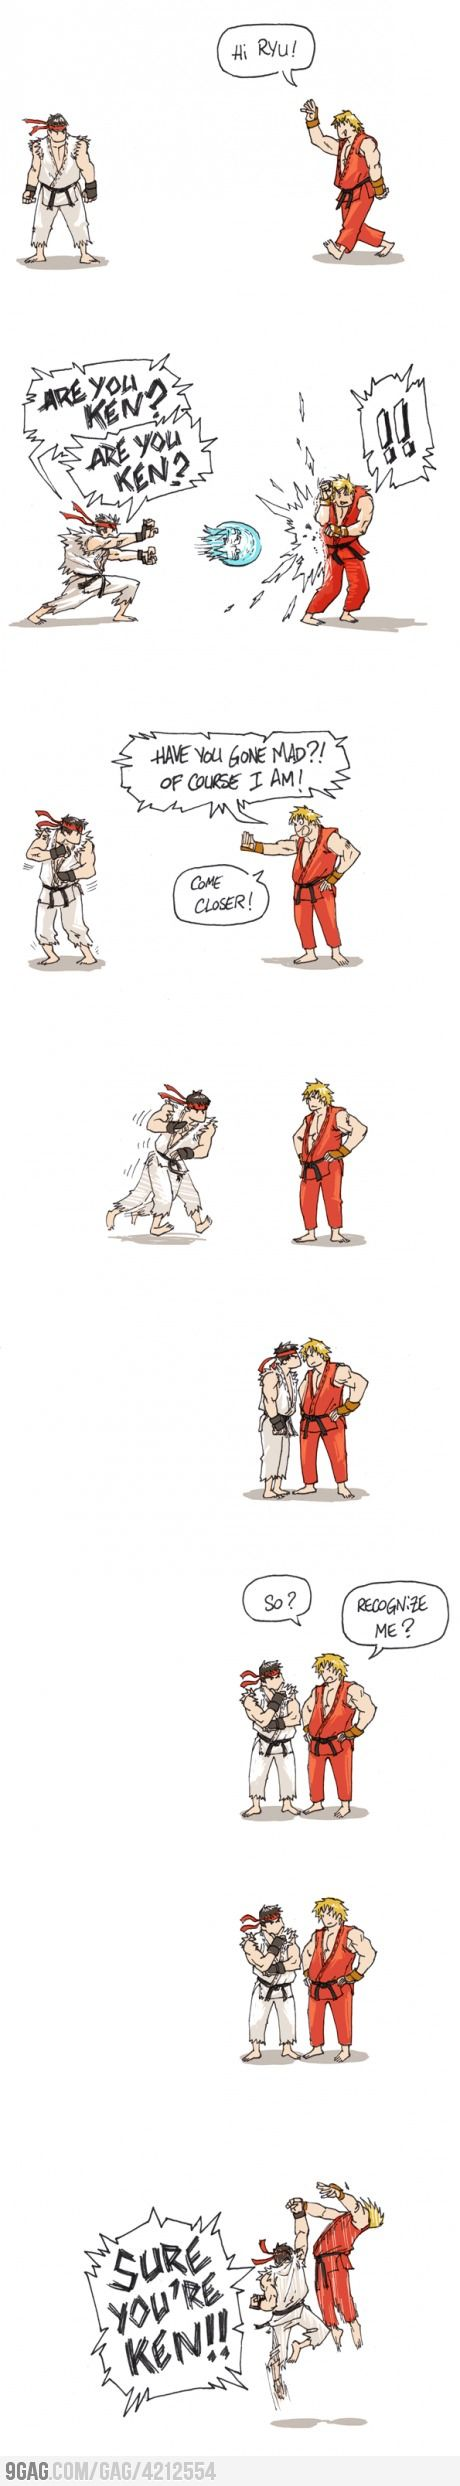 Especially if you've played Street Fighter before... shout out Ryu's moves and you'll understand this :-)